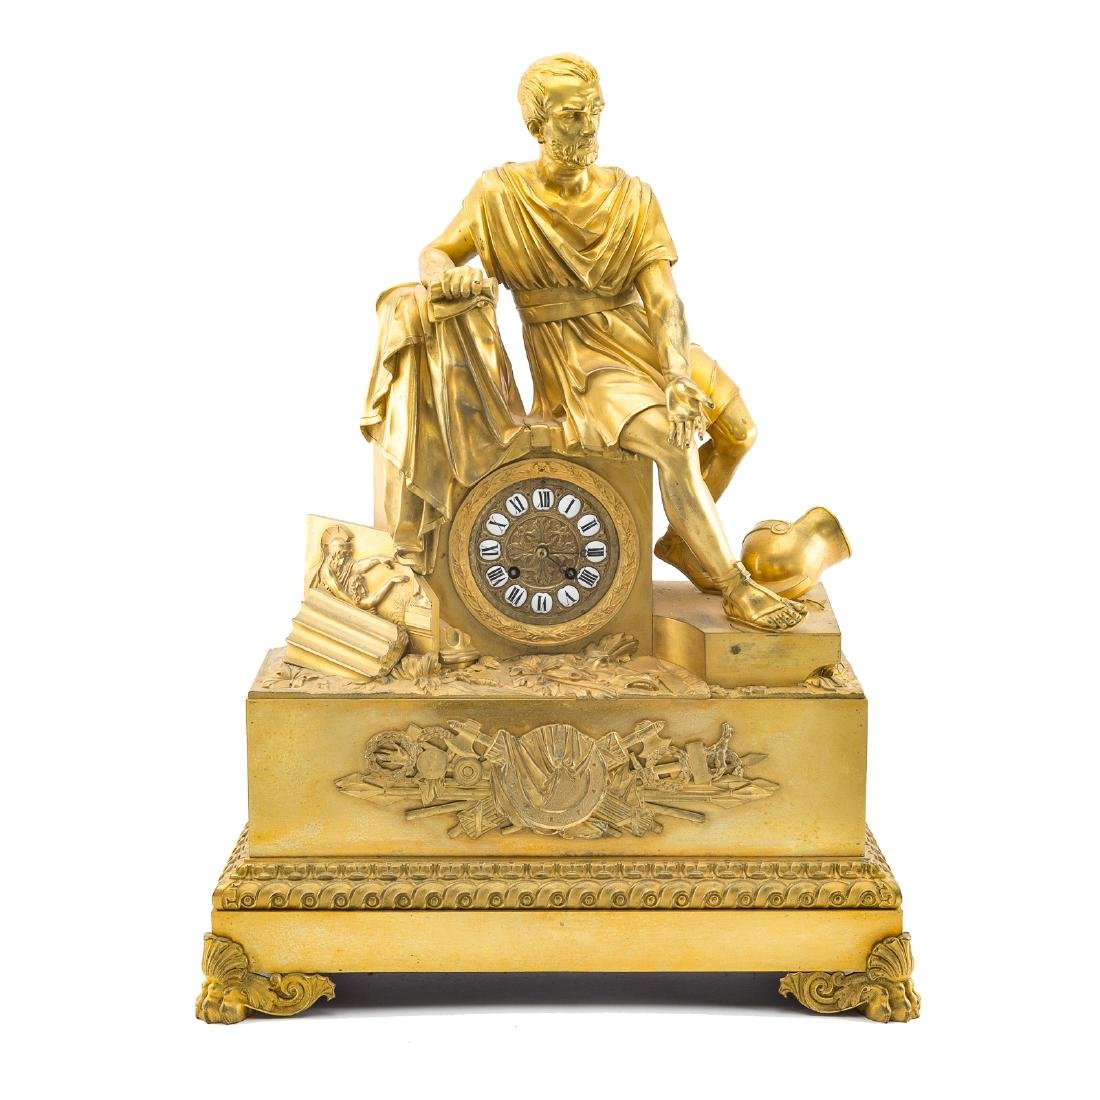 French Empire gilt-bronze figural mantel clock